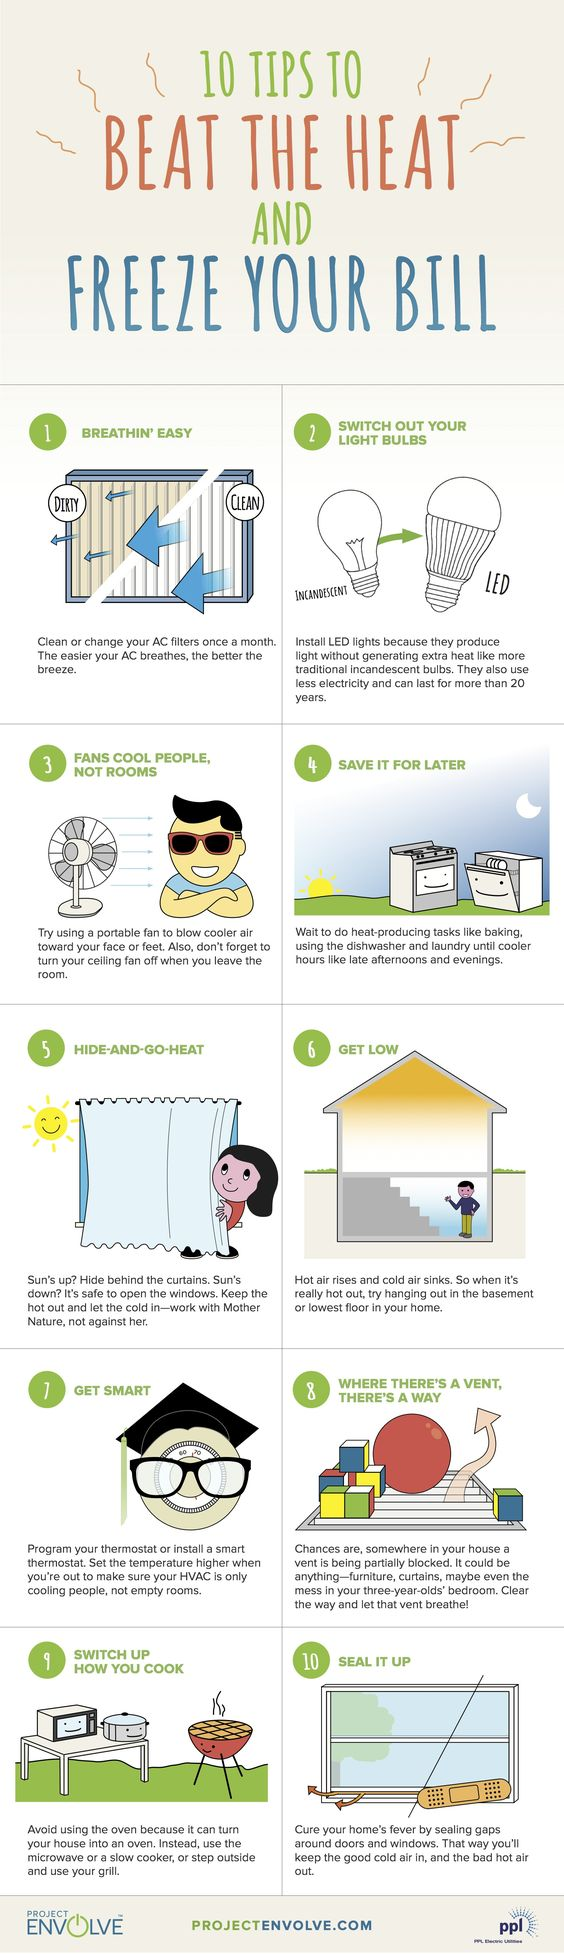 beat the heat: ways to conserve energy